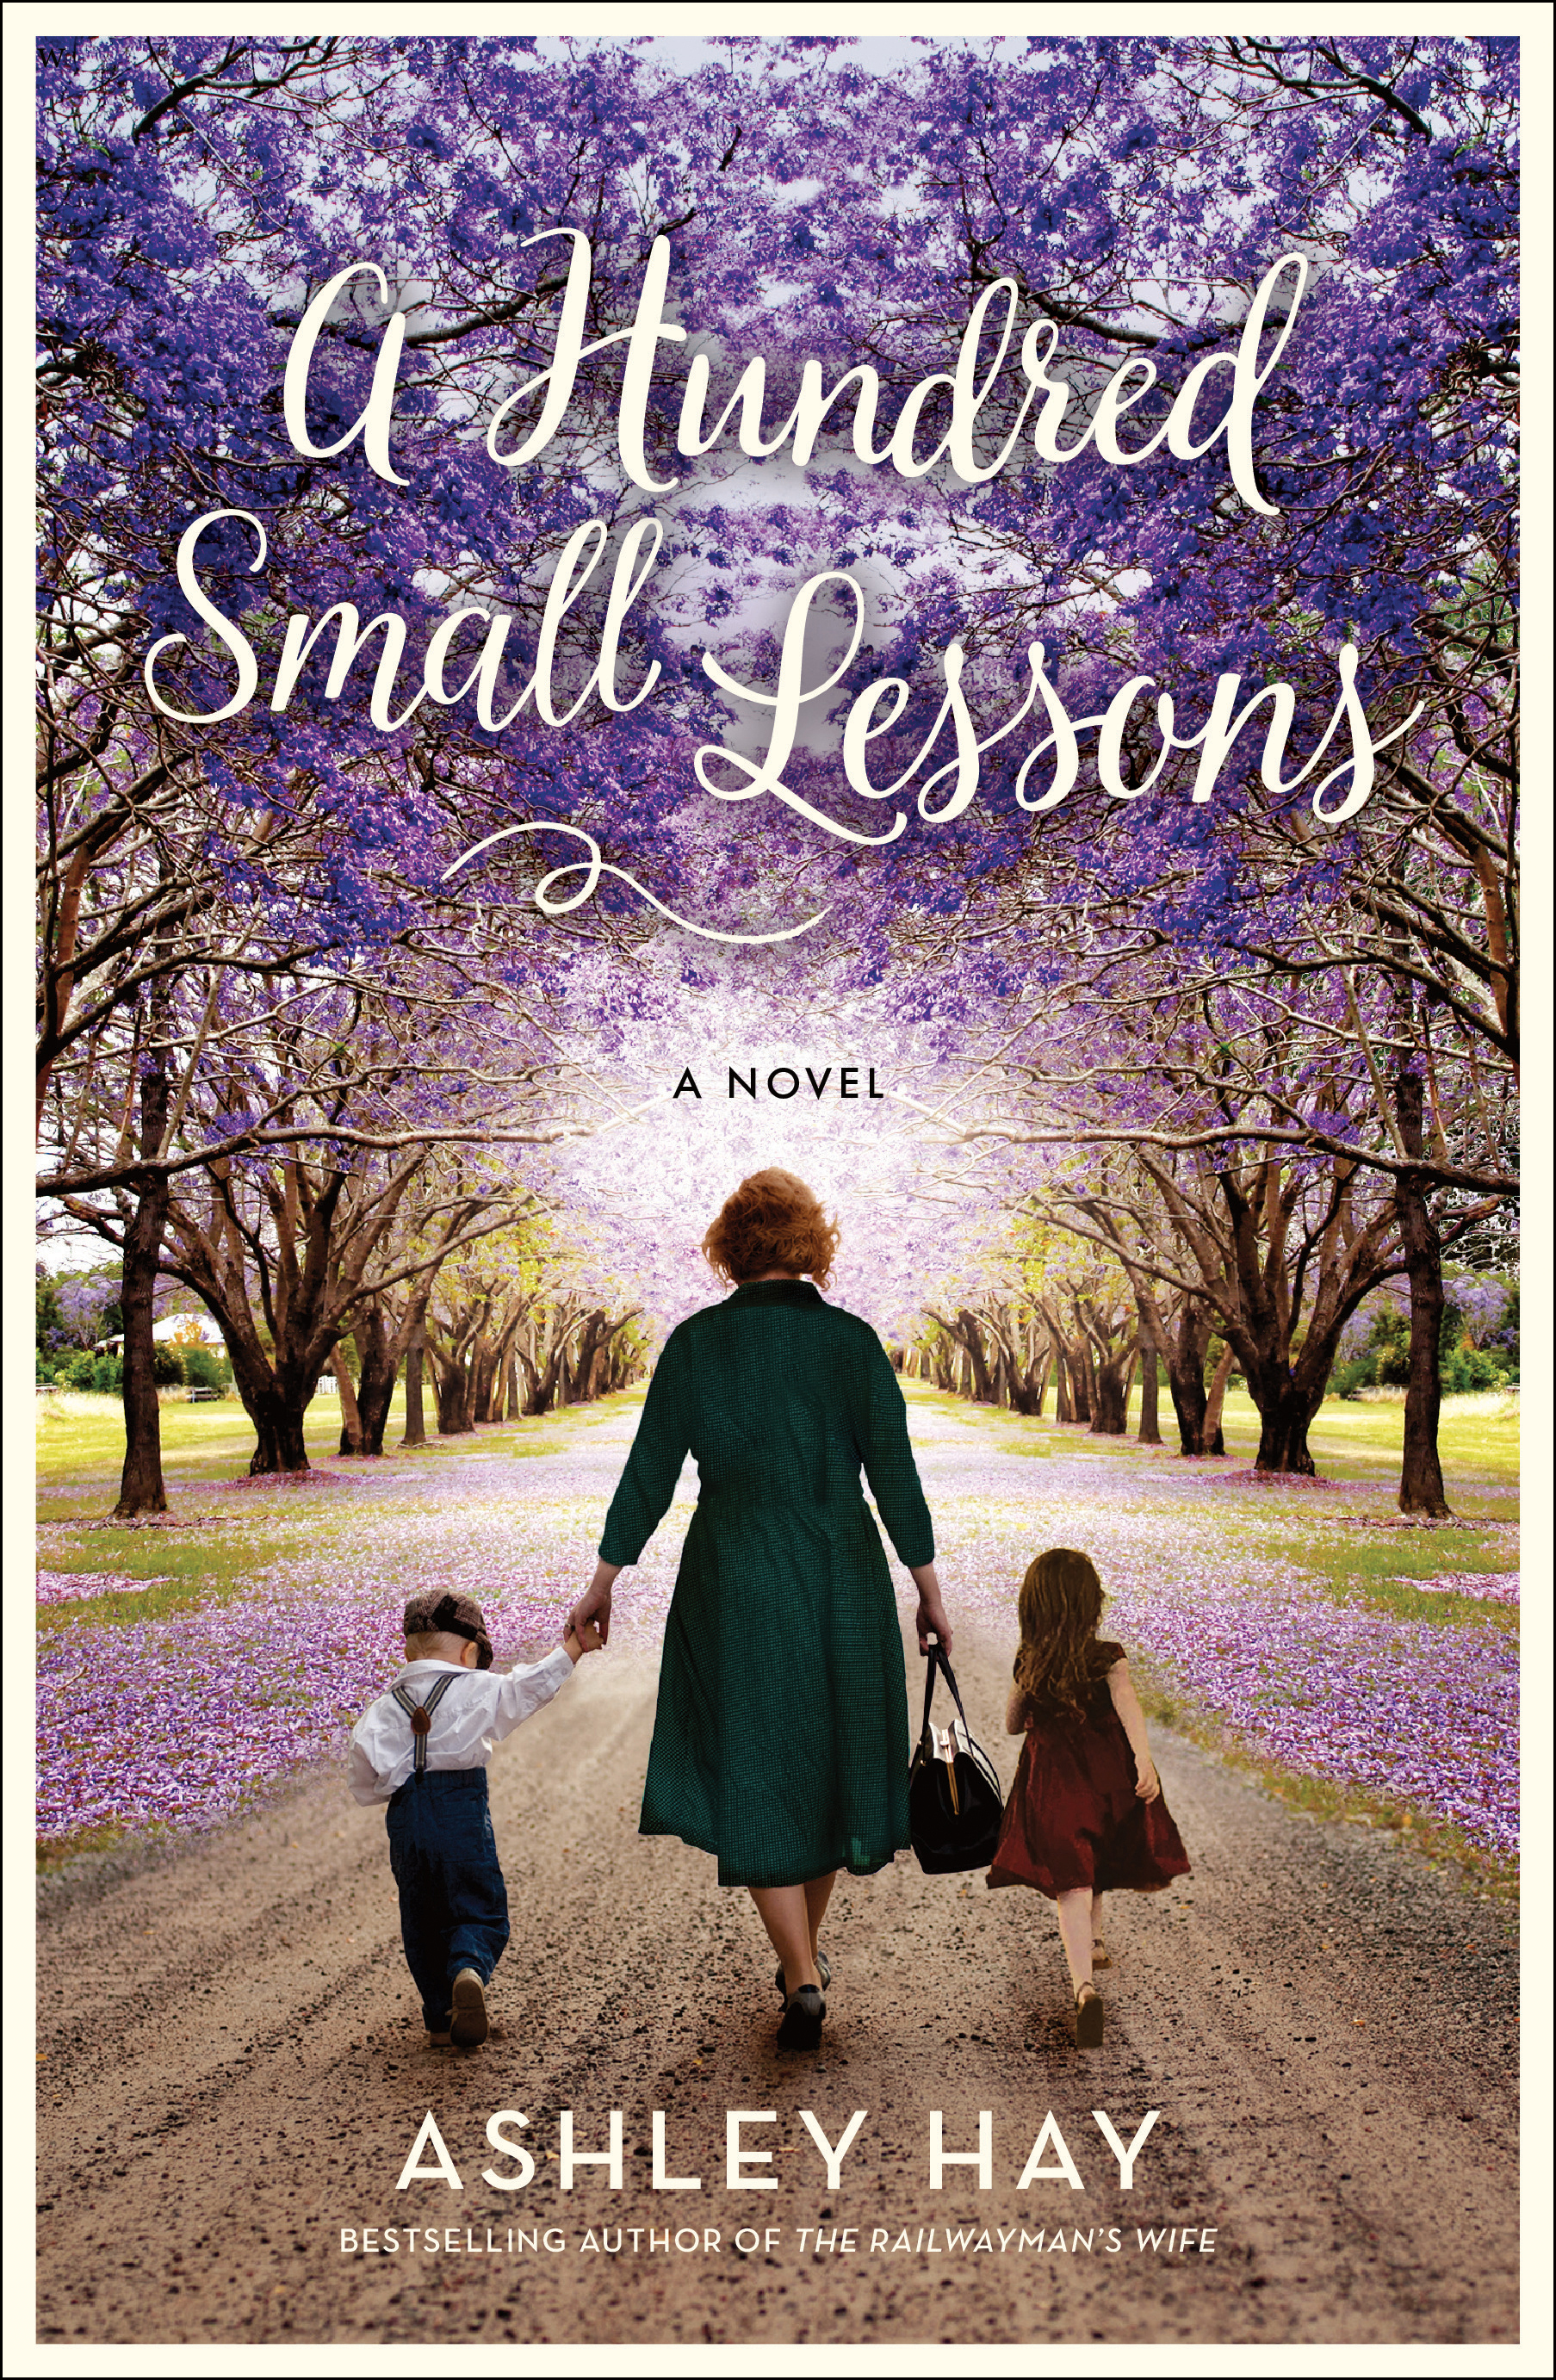 A Hundred Small Lessons by Ashley Hay, ISBN: 9781760293208